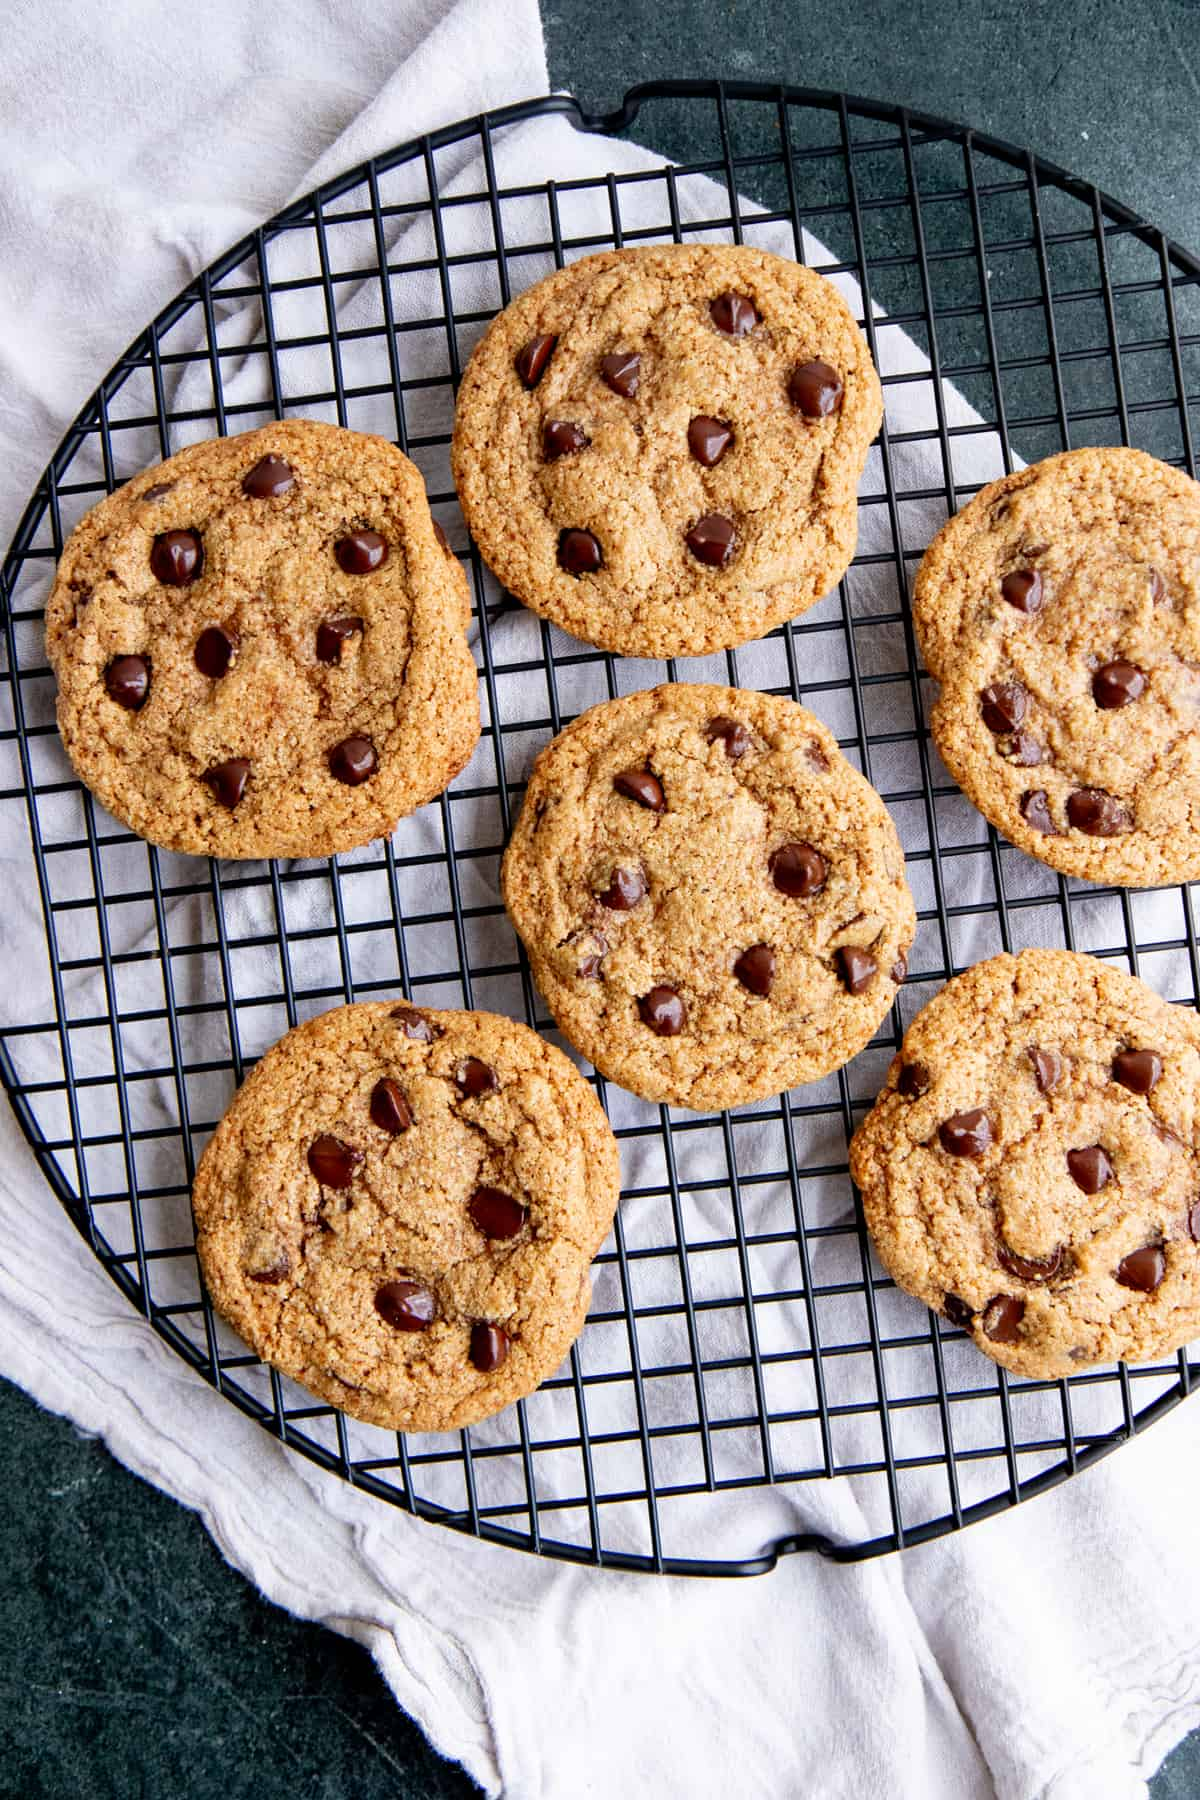 Six chocolate chip cookies sit on a round wire cooling rack.